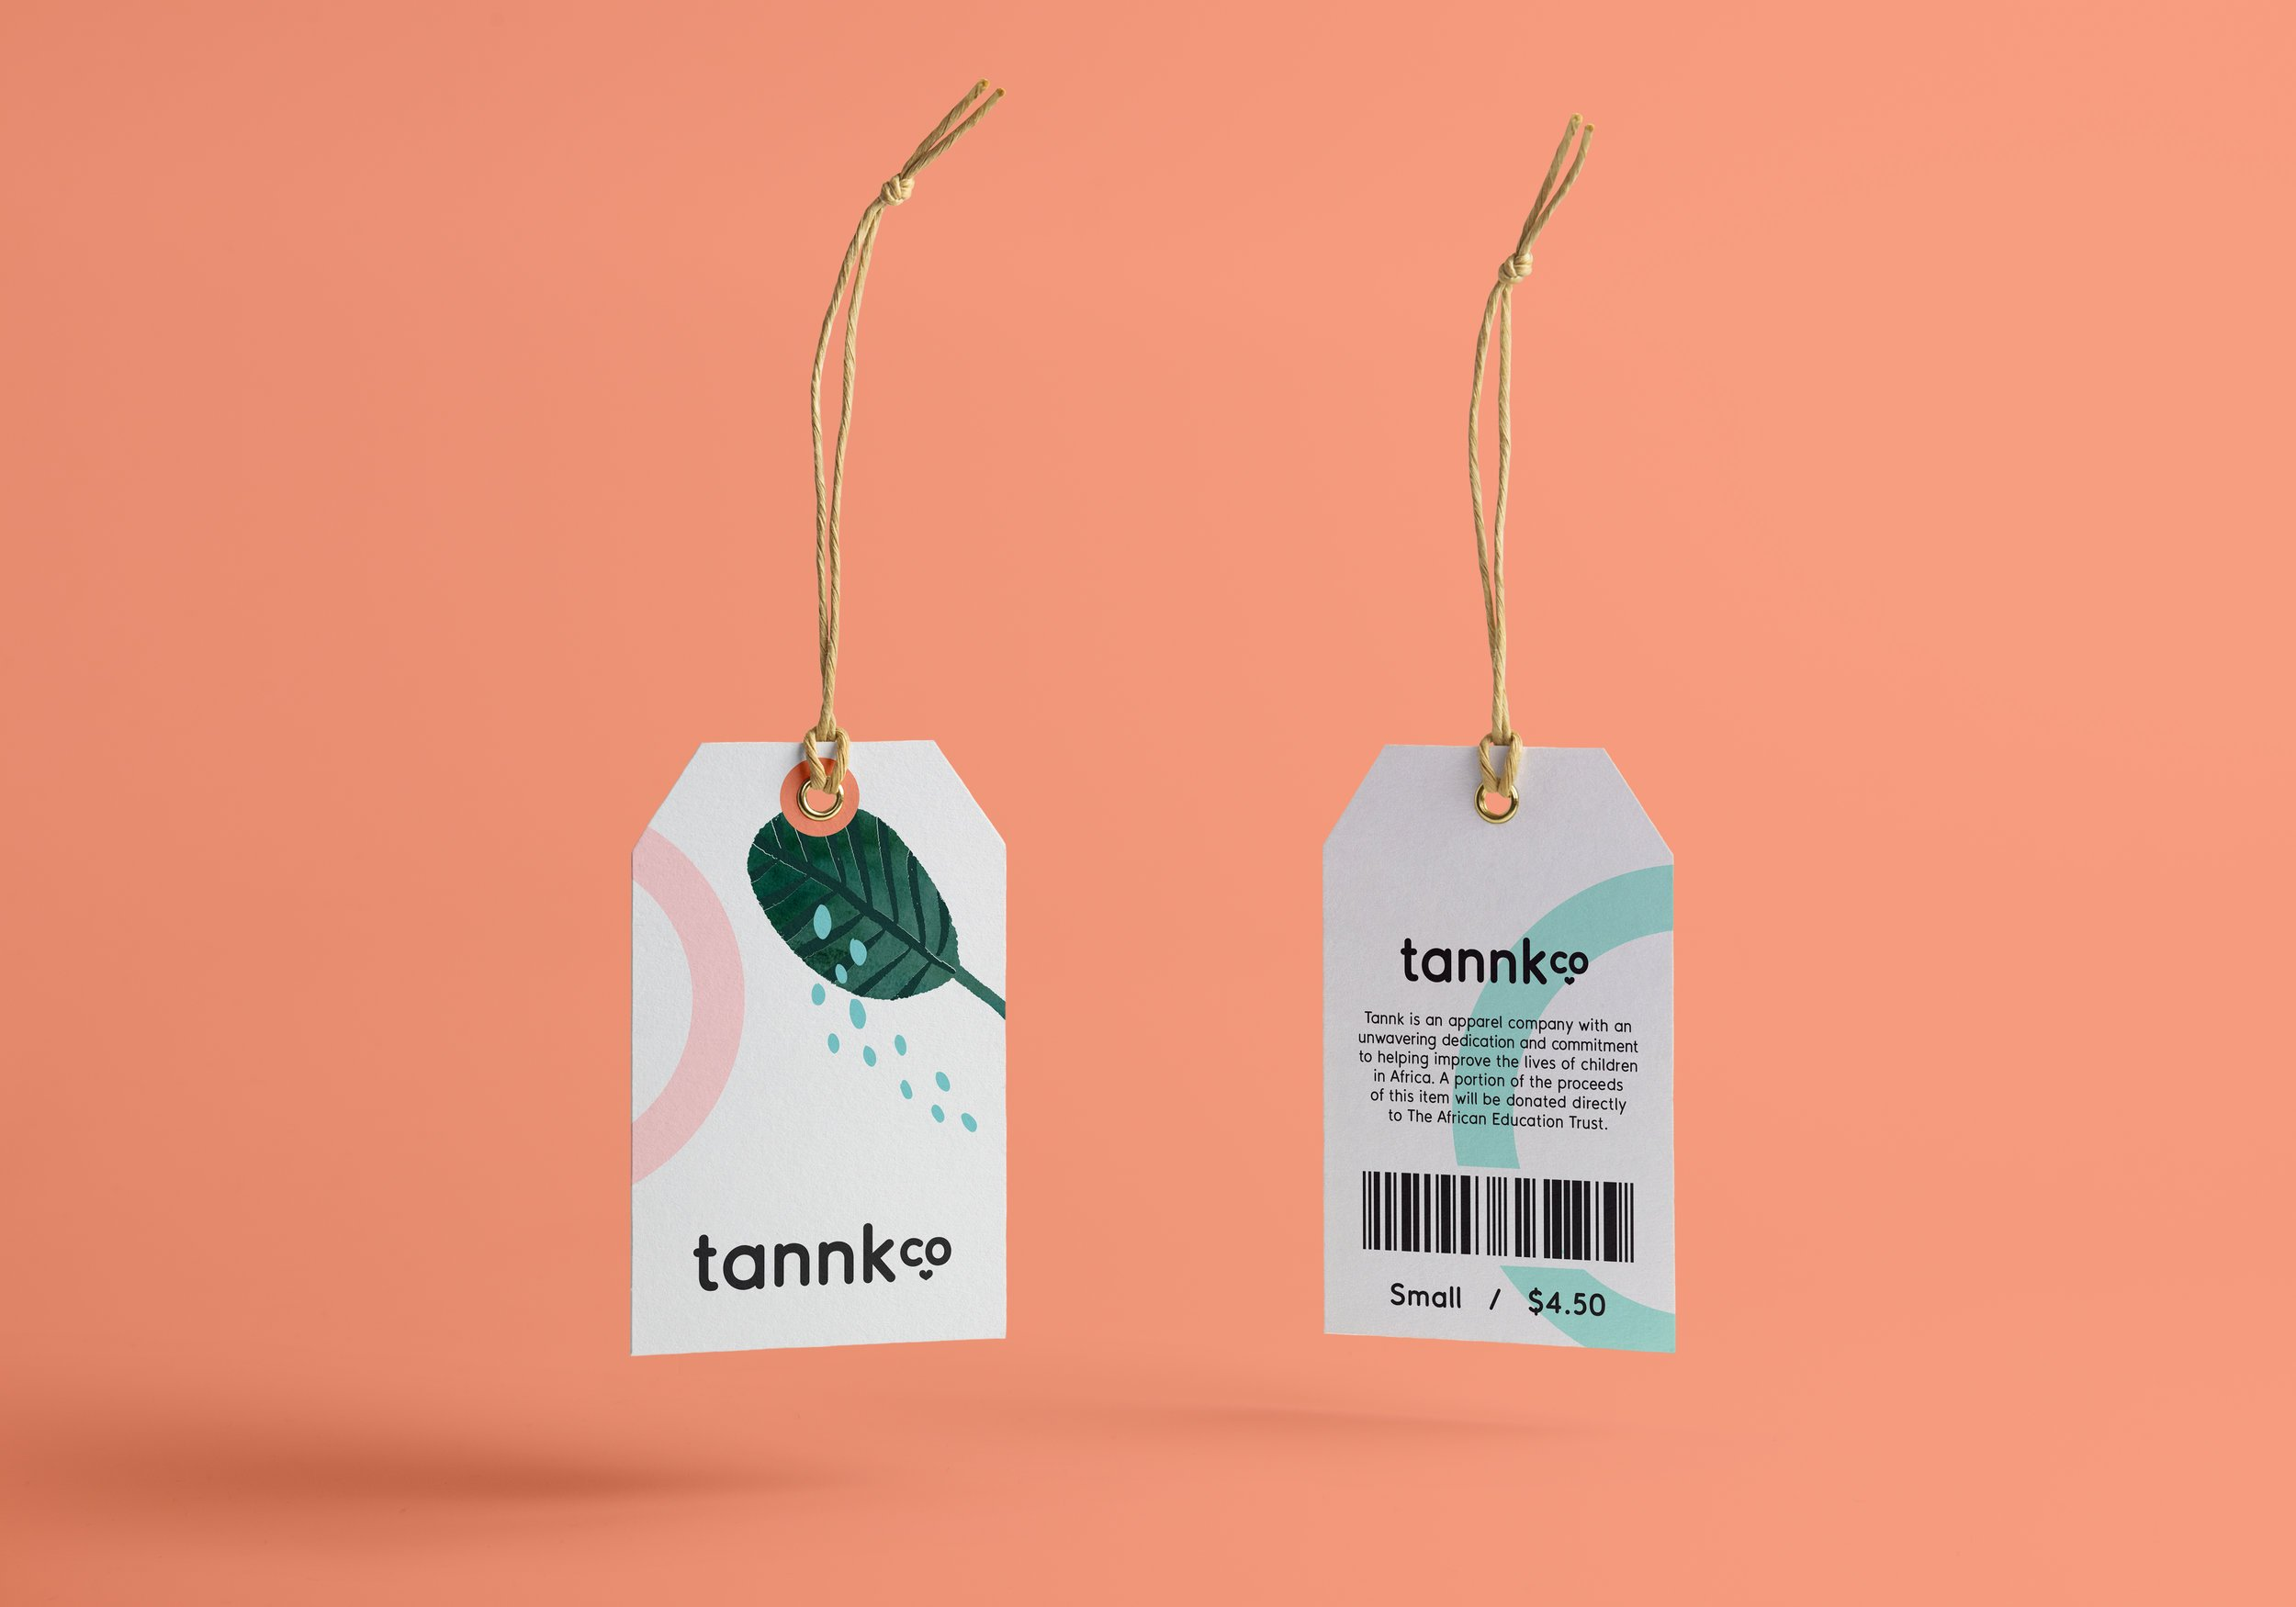 Tannk package design